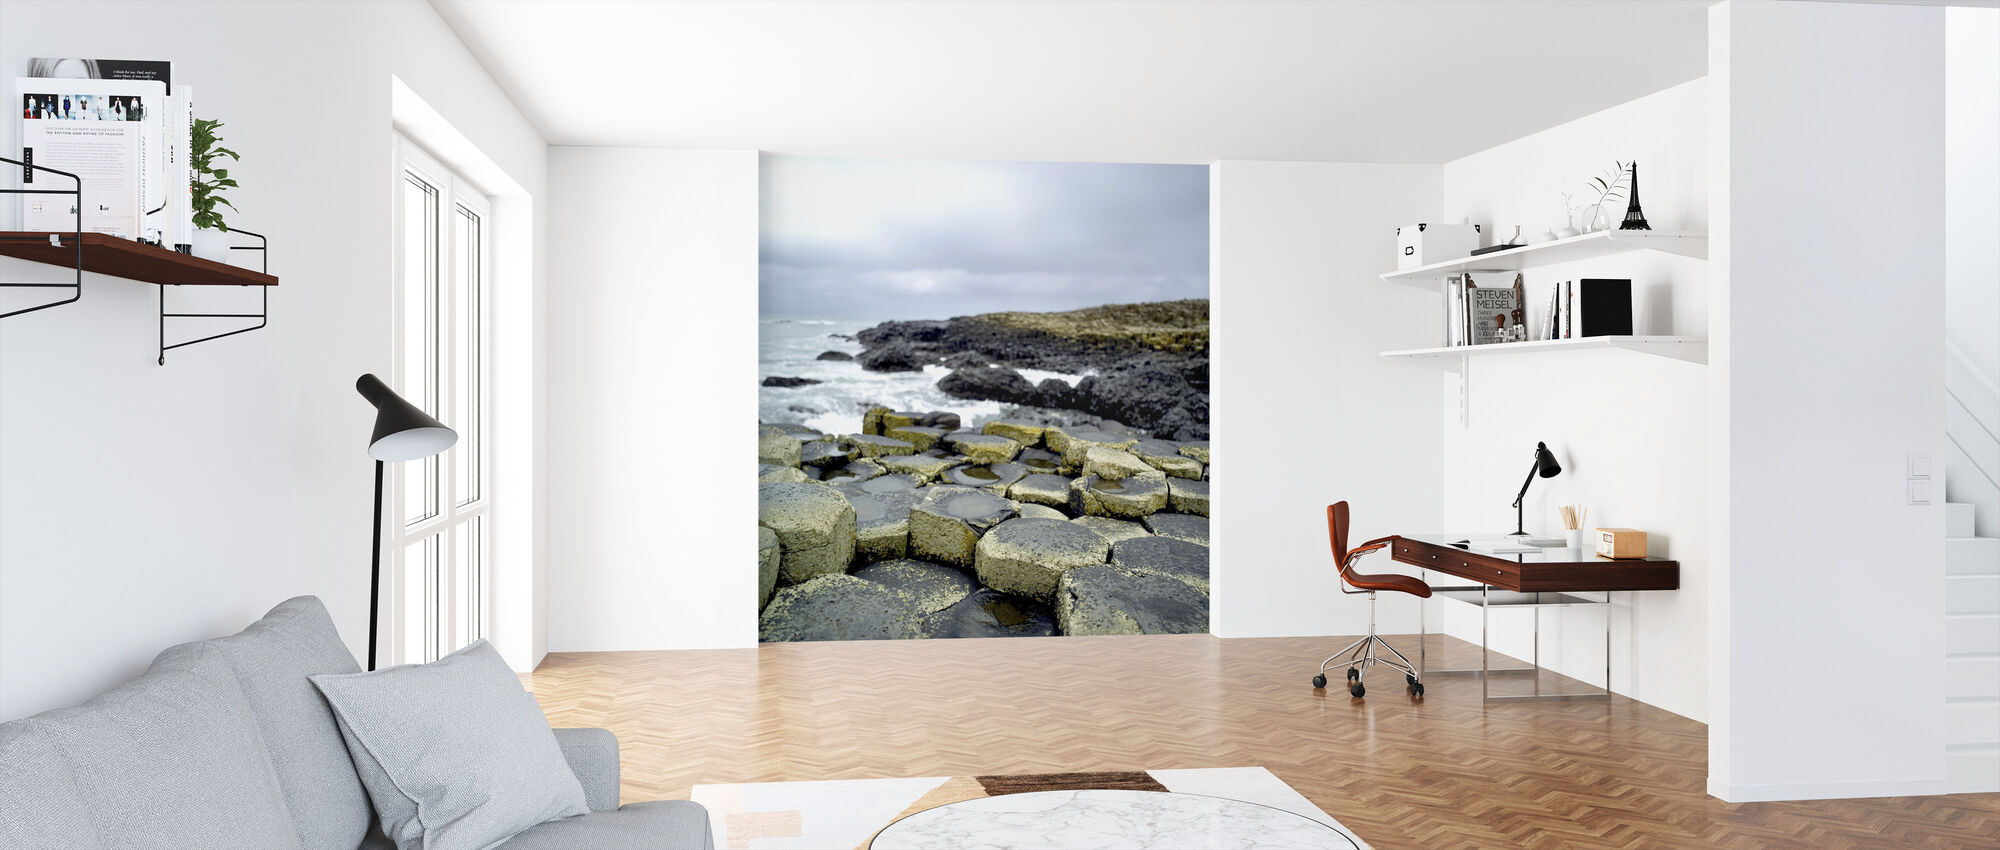 Giants Causeway - Wallpaper - Office